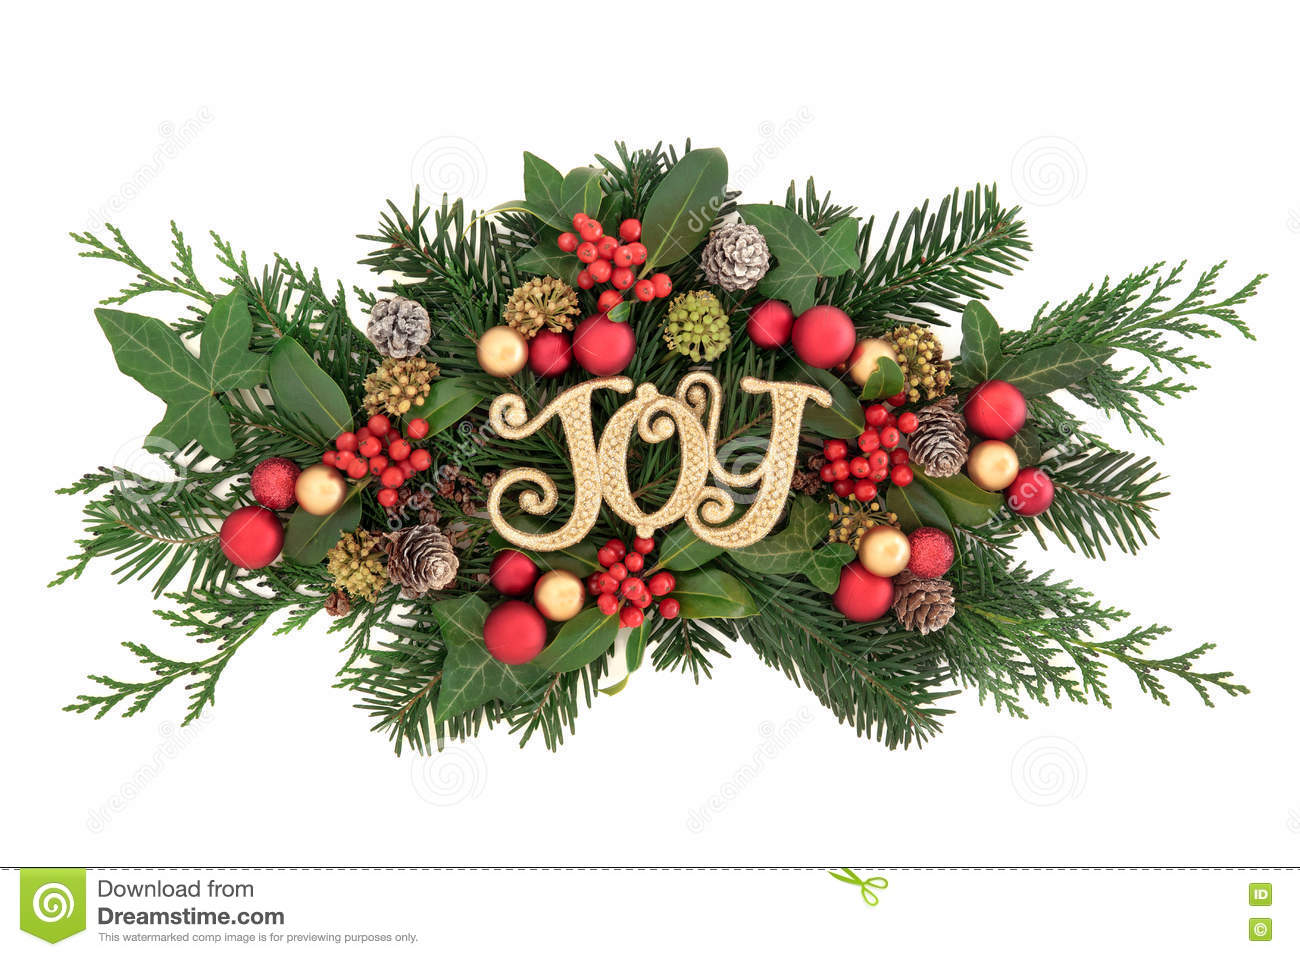 Christmas Joy Decoration stock image. Image of decorative - 78781209